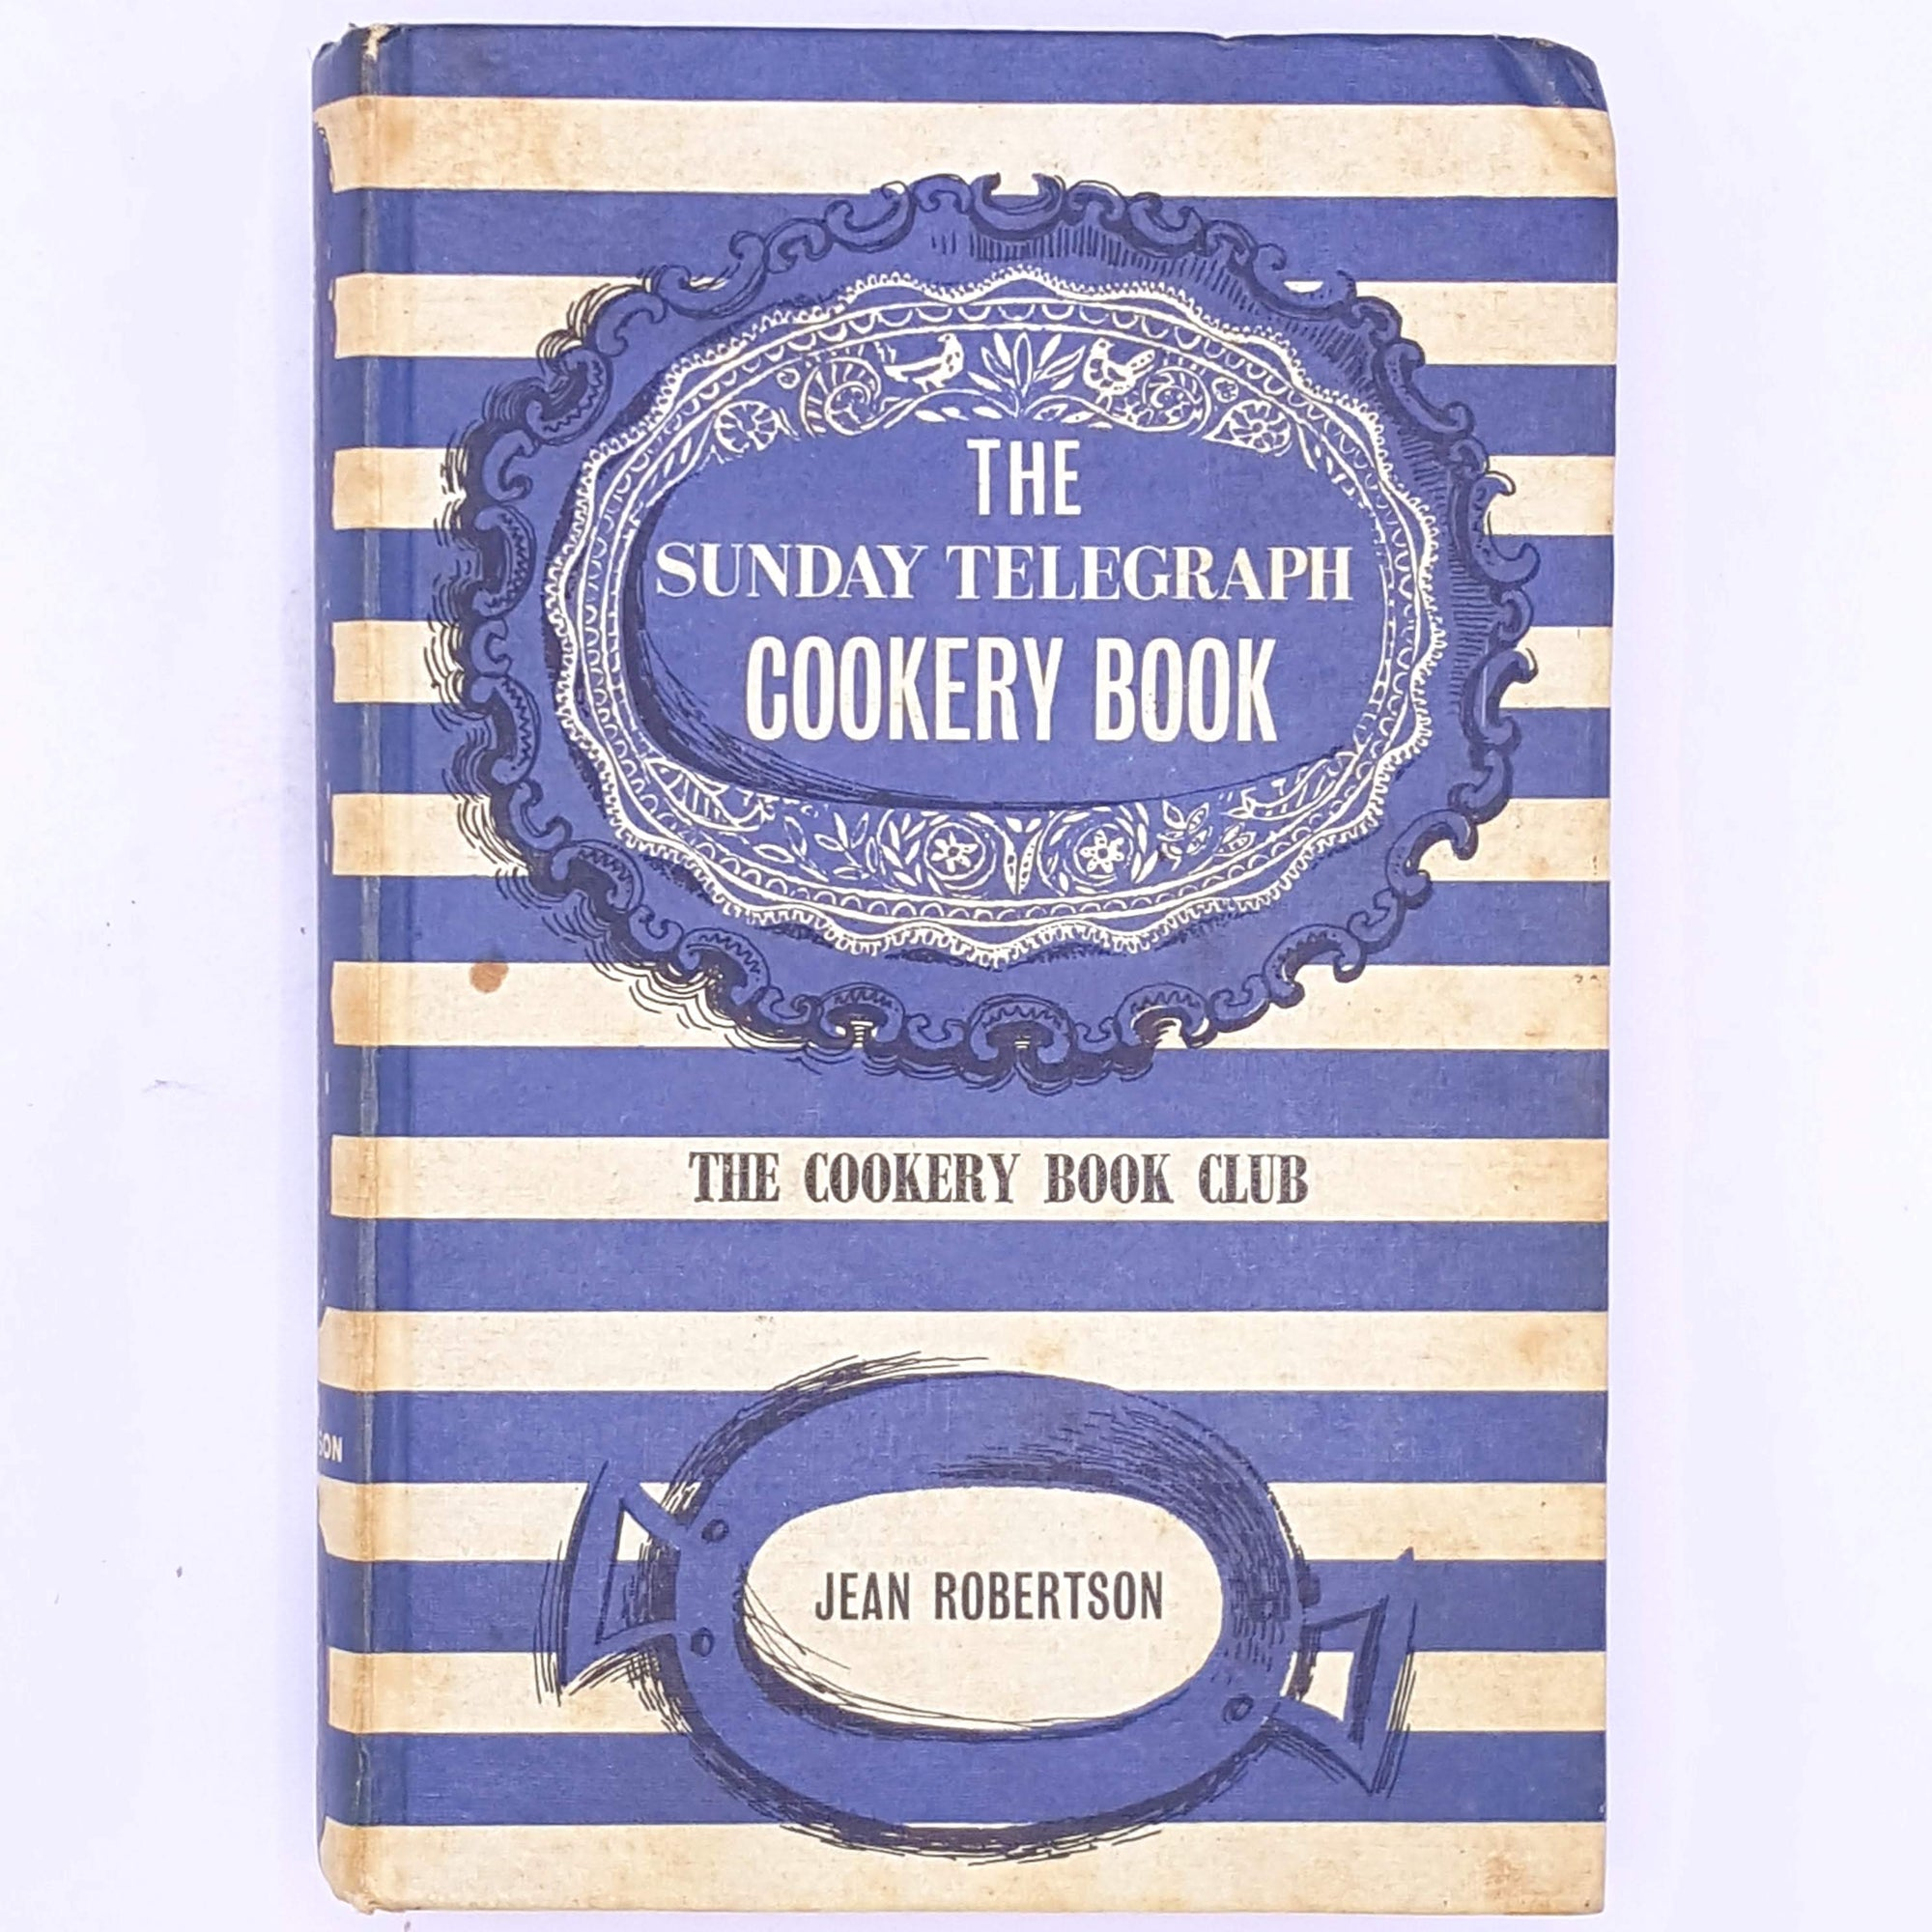 The Sunday Telegraph Cookery Book, Jean Robertson